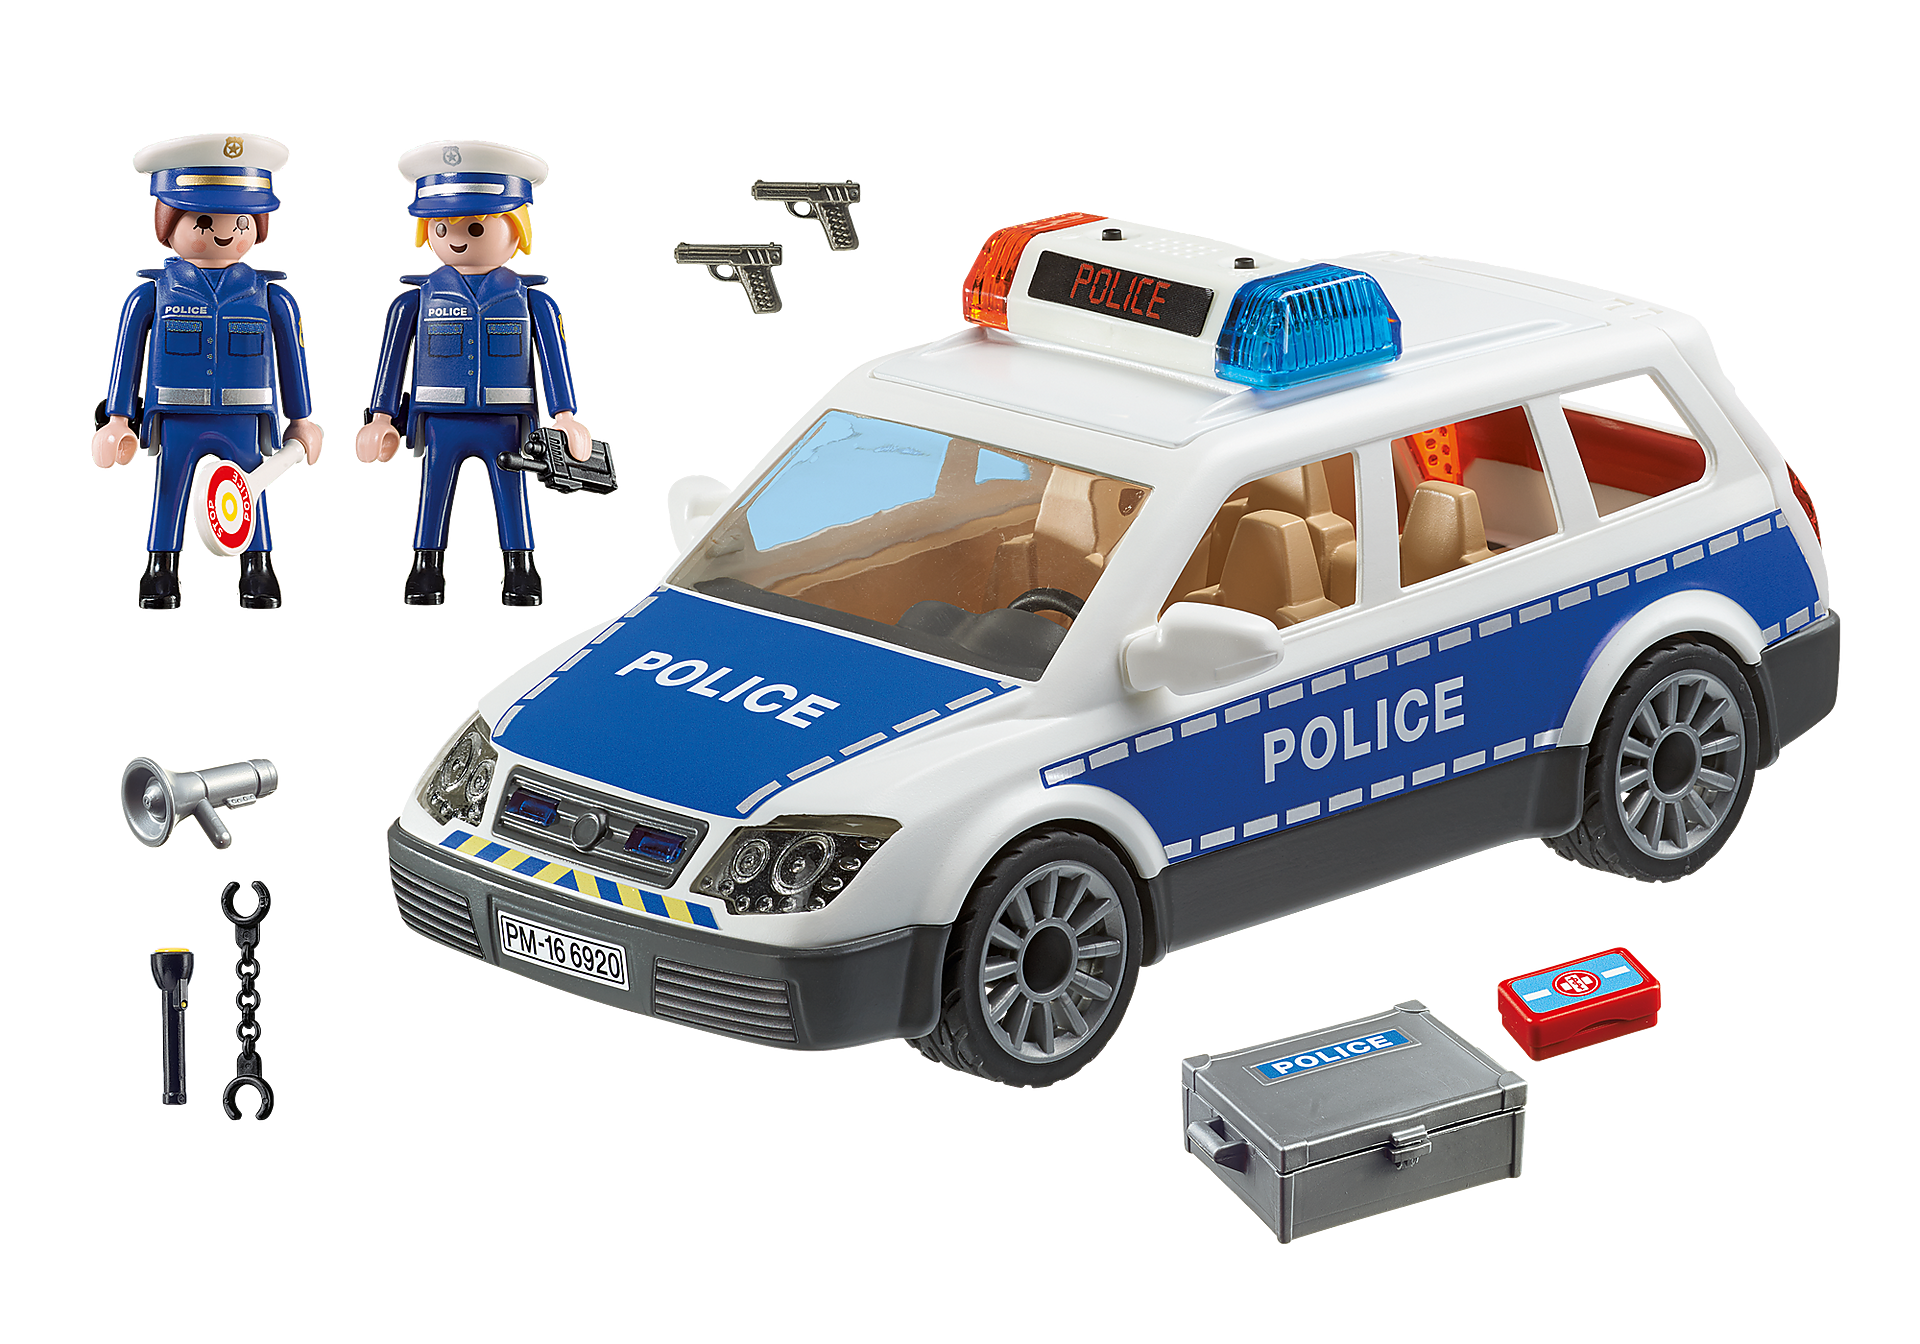 http://media.playmobil.com/i/playmobil/6873_product_box_back/Polizei-Einsatzwagen